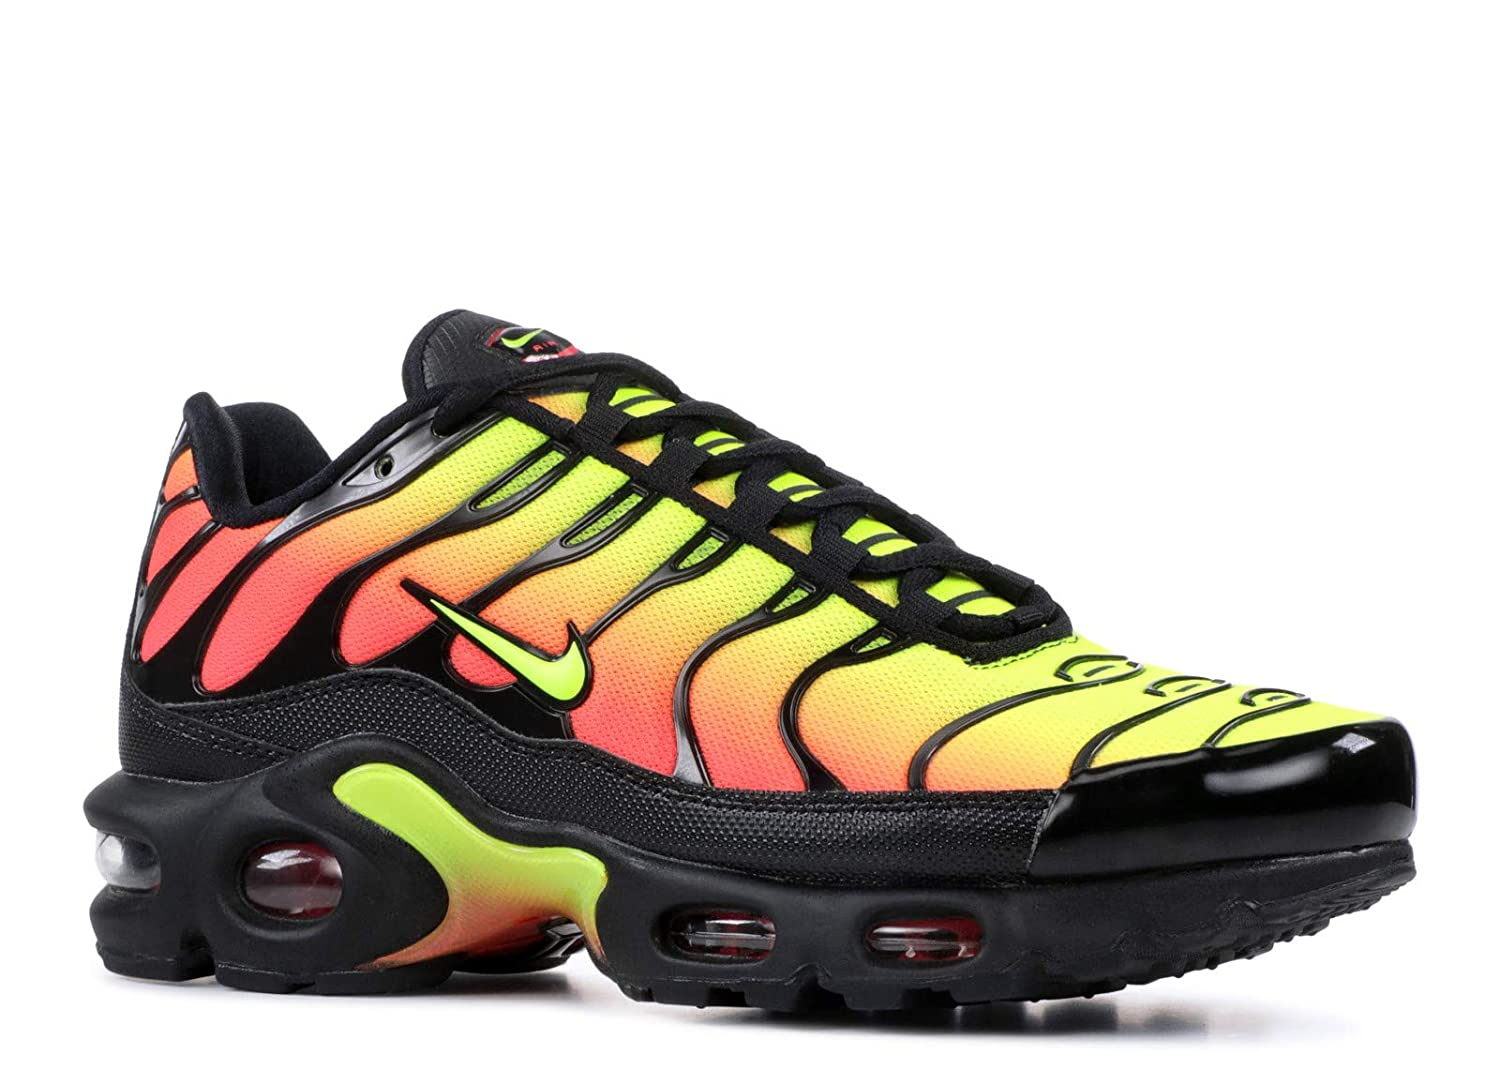 Nike Mujeres Air MAX Plus TN Se Running Trainers Aq9979 Sneakers Zapatos: Amazon.es: Zapatos y complementos